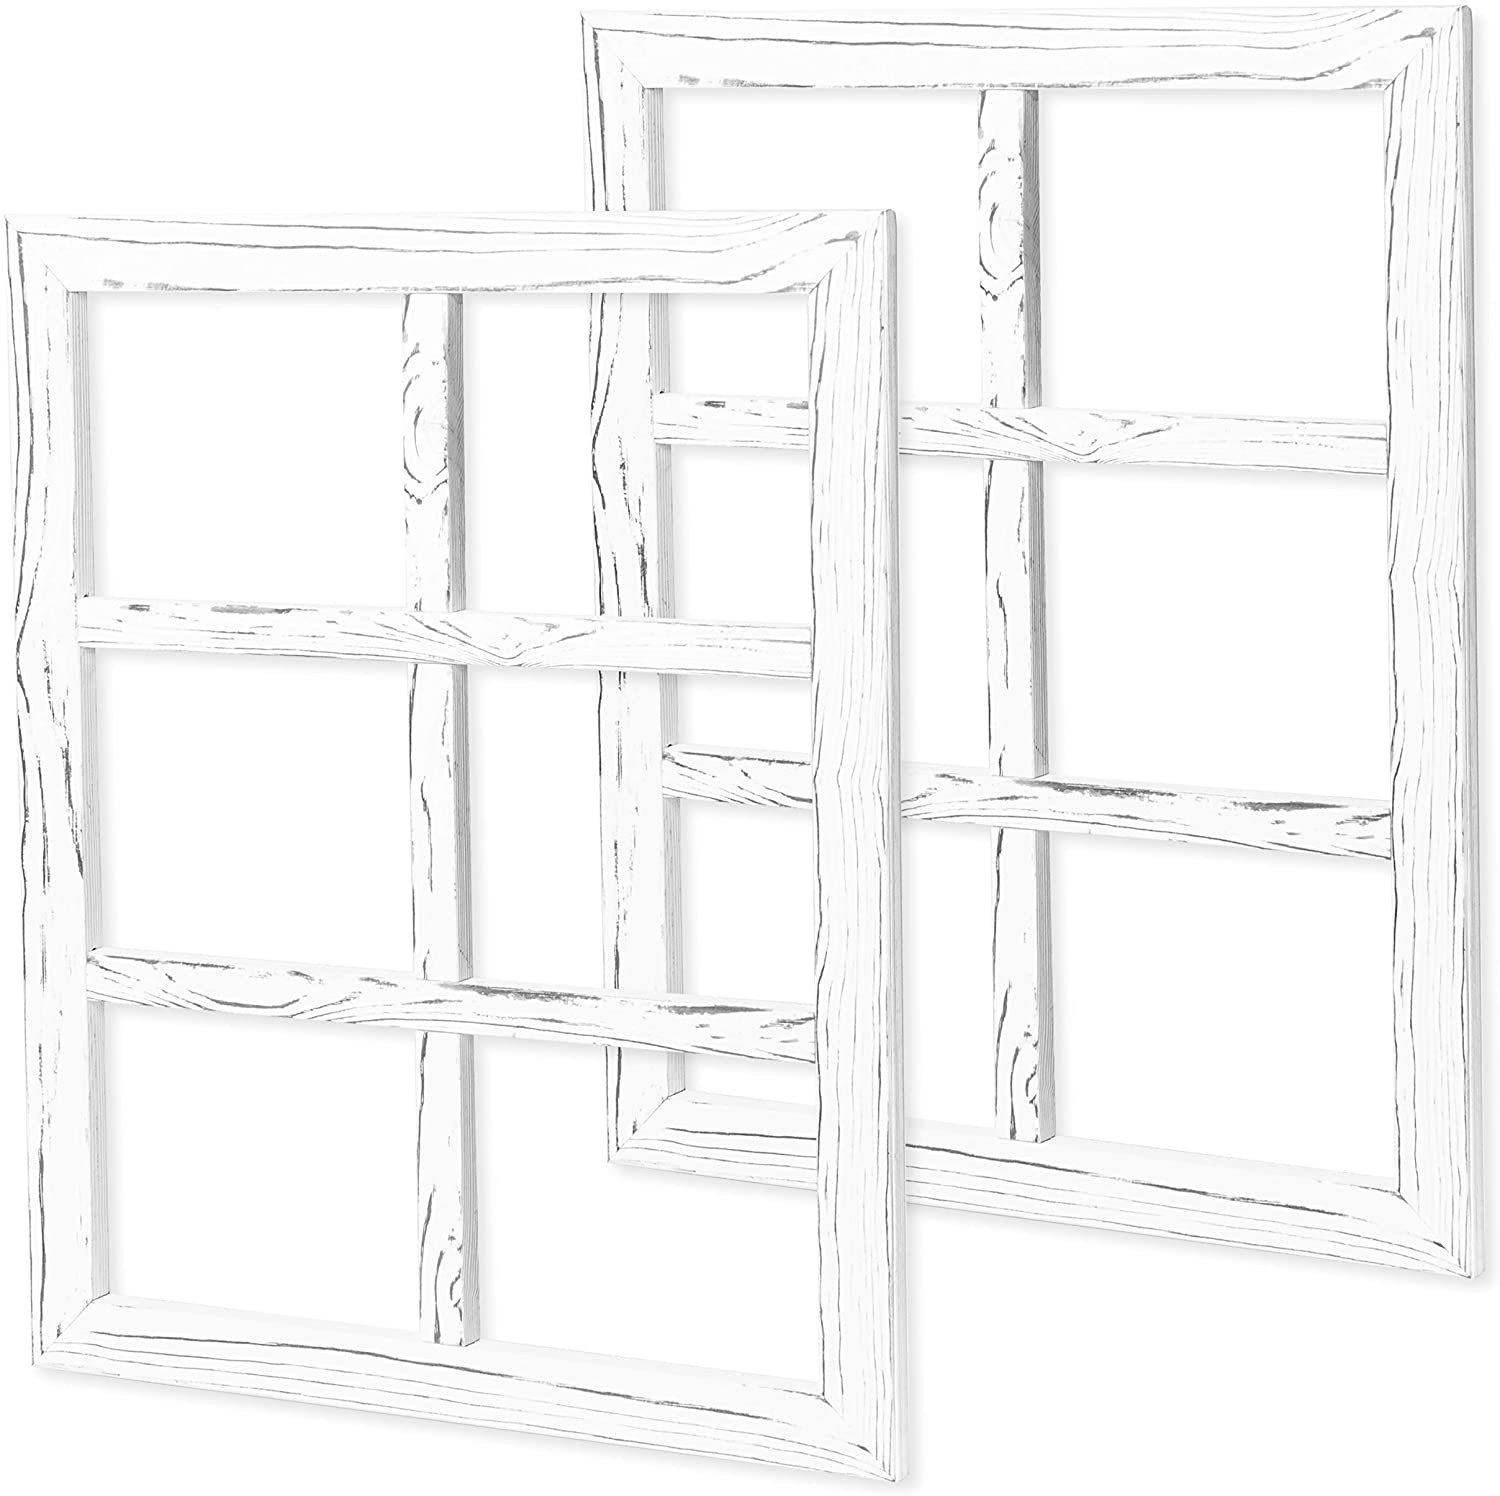 Ilyapa Window Frame Wall Decor 2 Pack - Large 18x22 Inch Rustic White Wood Window 6 Pane Country Farmhouse Decorations